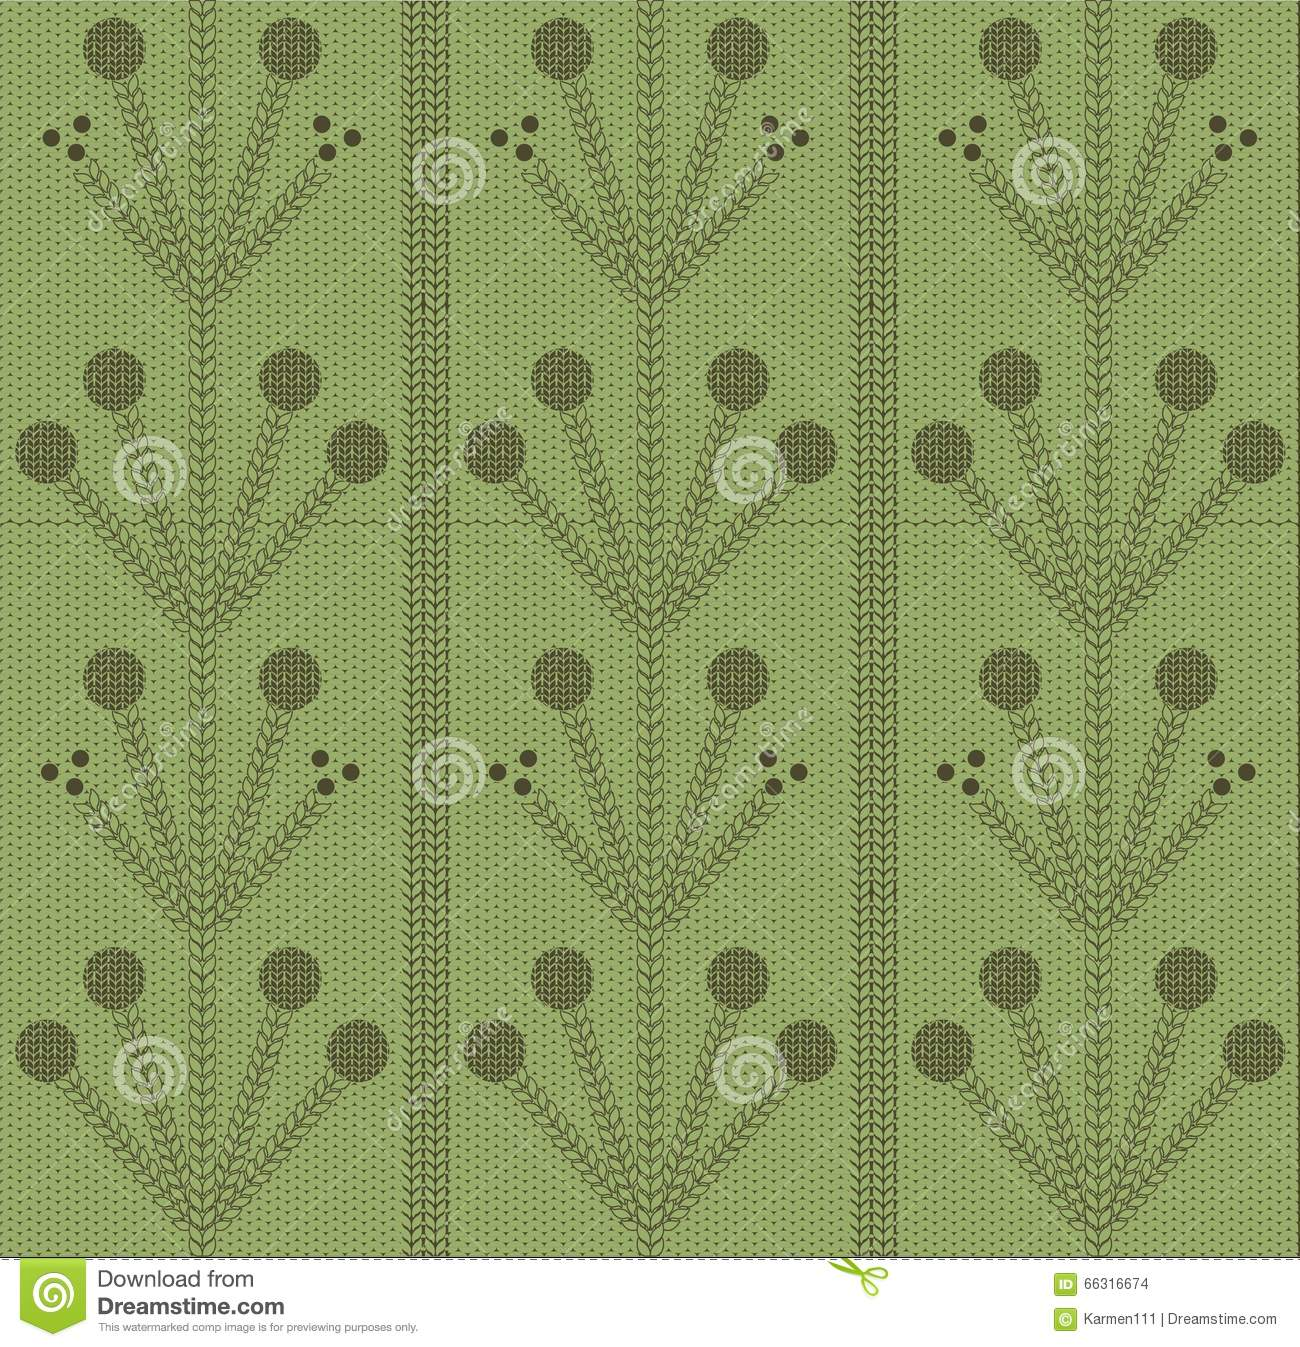 green fashion knitting pattern handmade textures stock vector